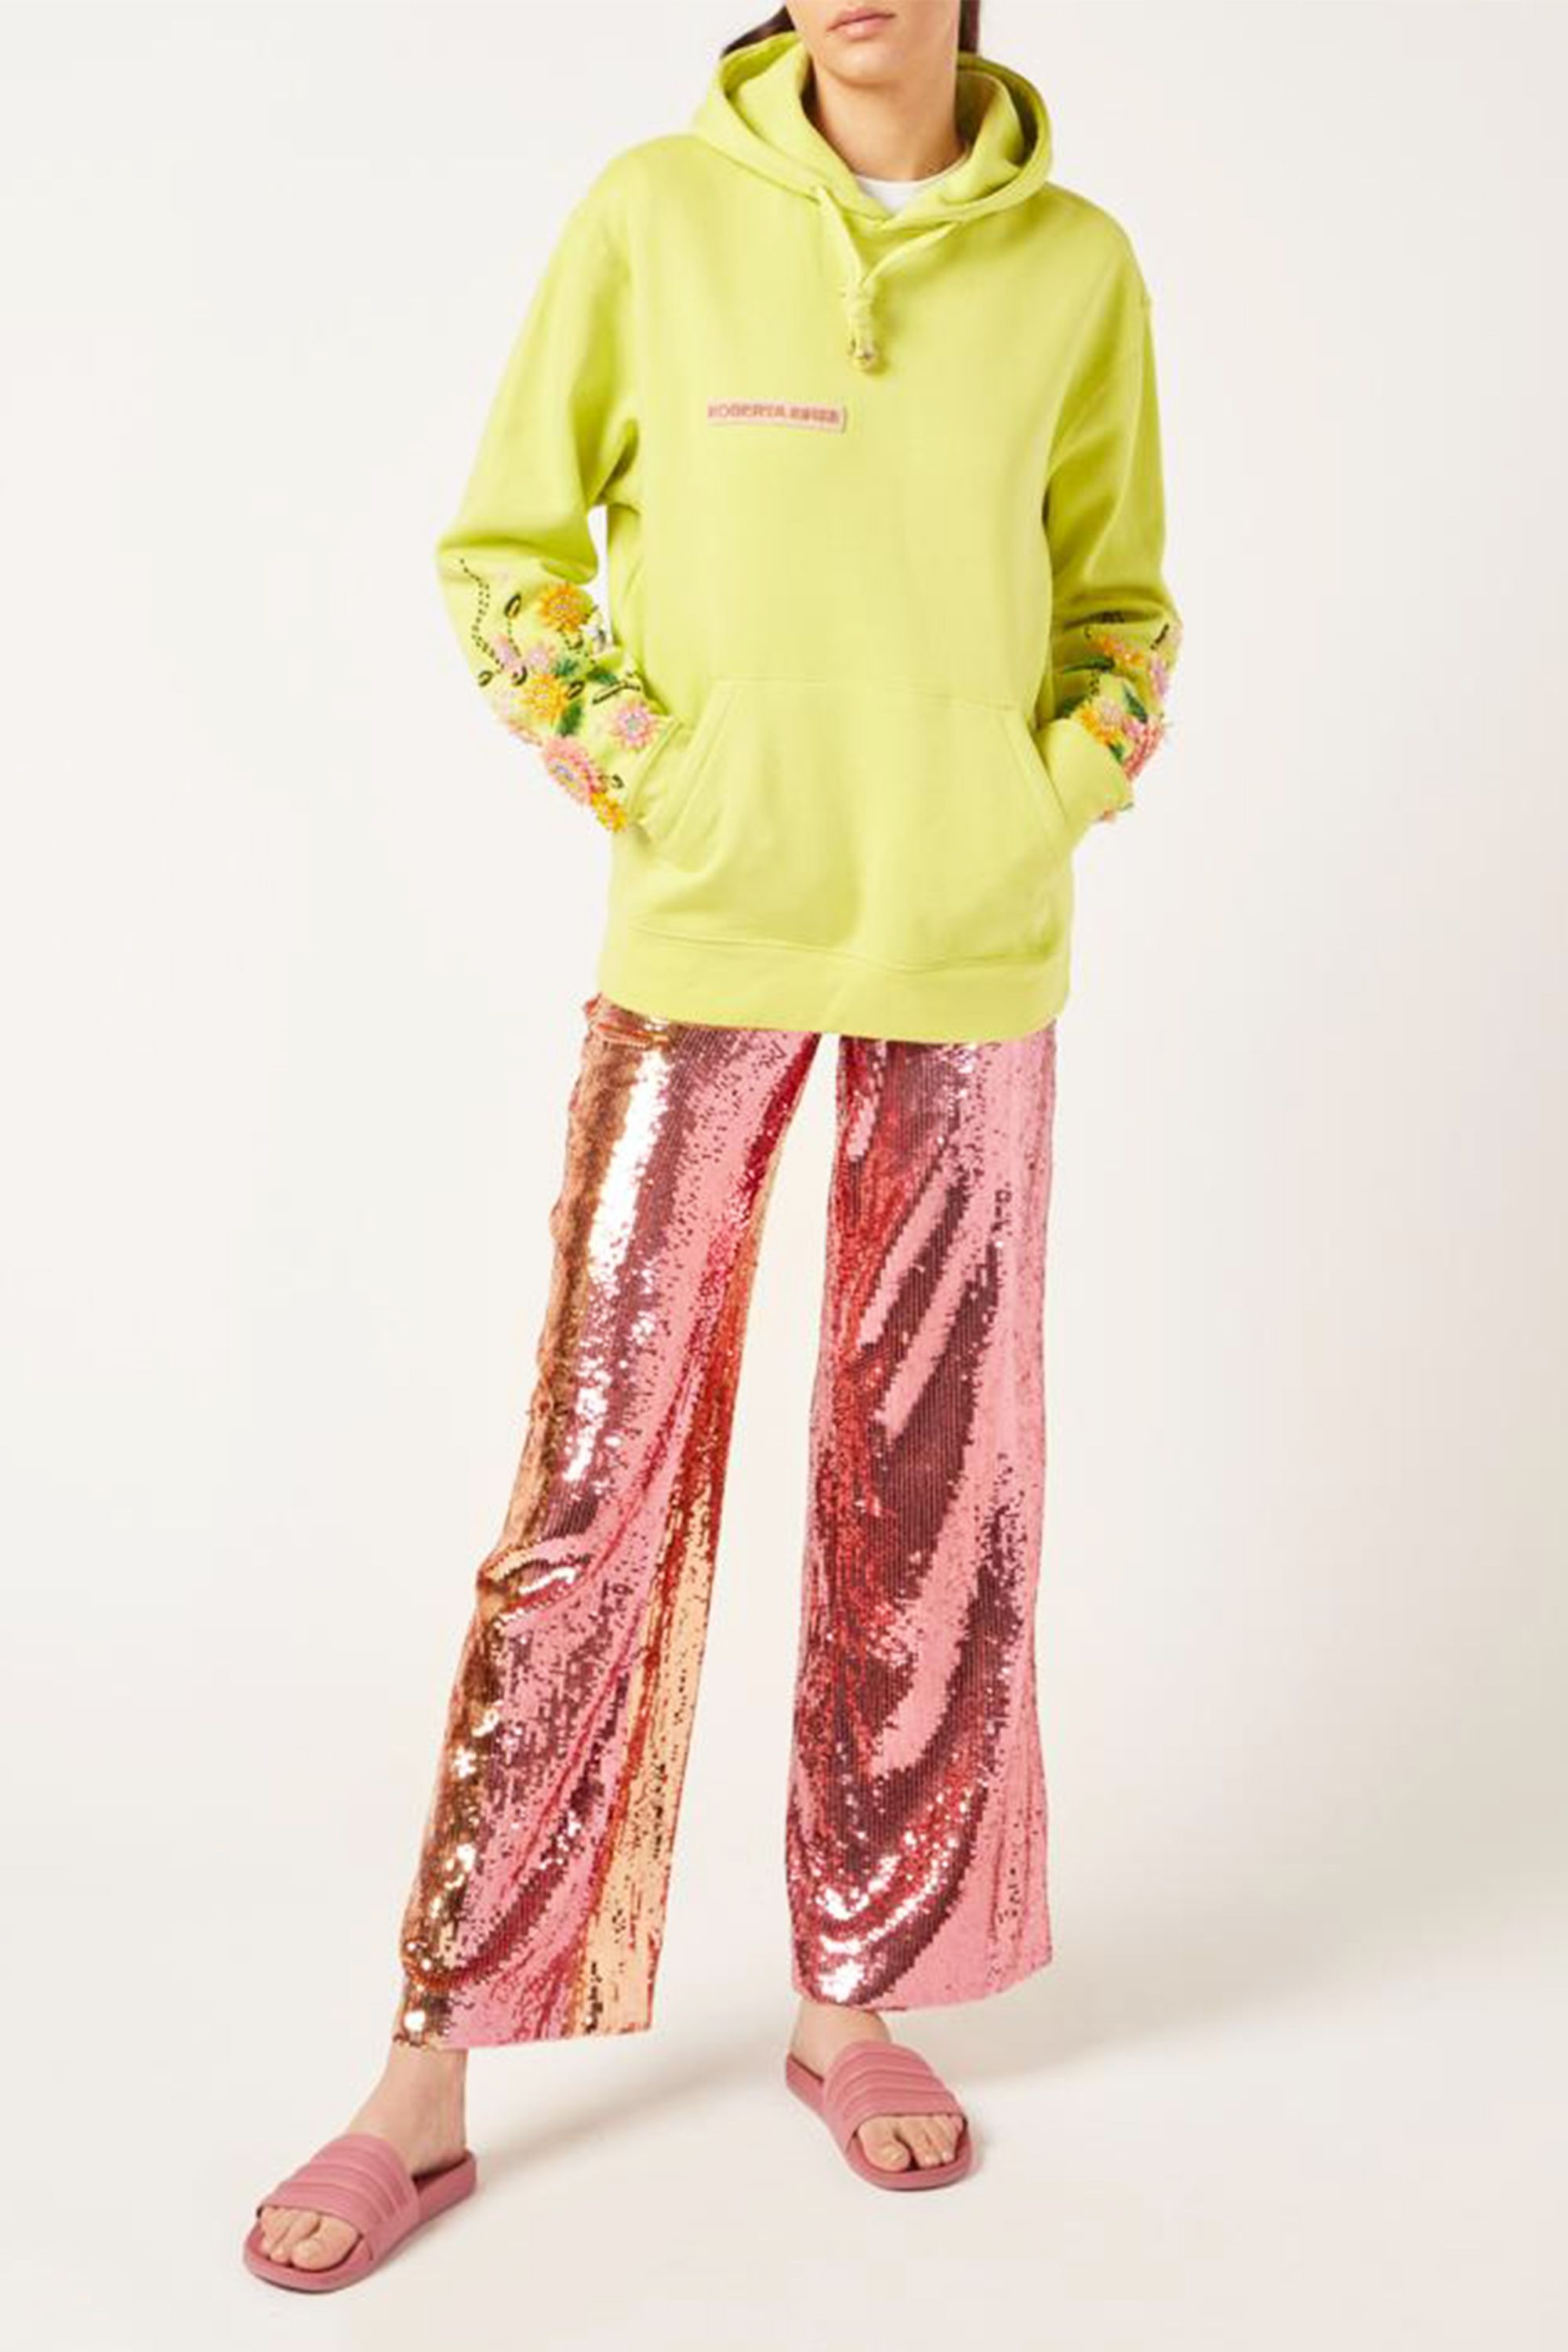 "Flower Garden Hoodie Roberta Einer koibird.com £515.00 SHOP NOW Sequin pants may not scream ""Memorial Day Weekend,"" but this fun color combo does. Clash metallic pink with a lime green hoodie and pool slides for an outfit everyone will compliment you on (or at the very least, notice)."